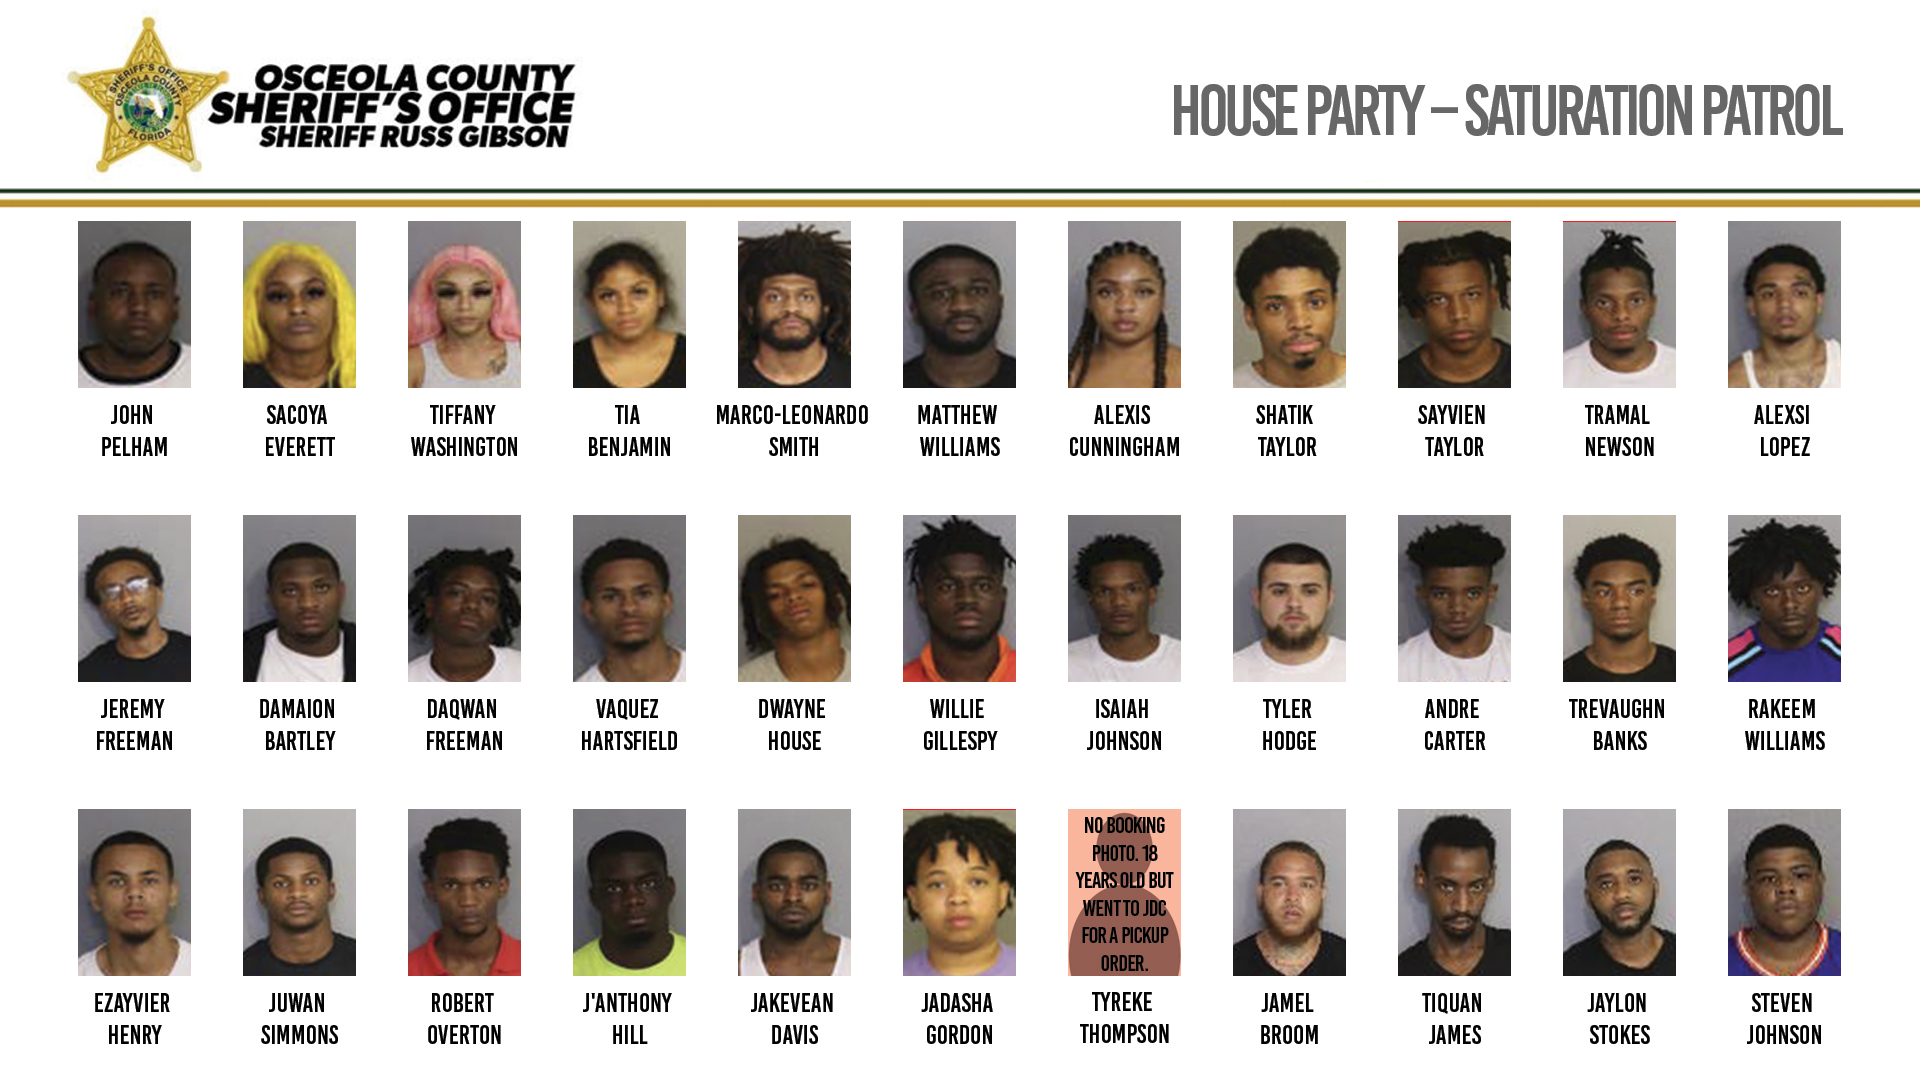 House Party Saturation Patrol